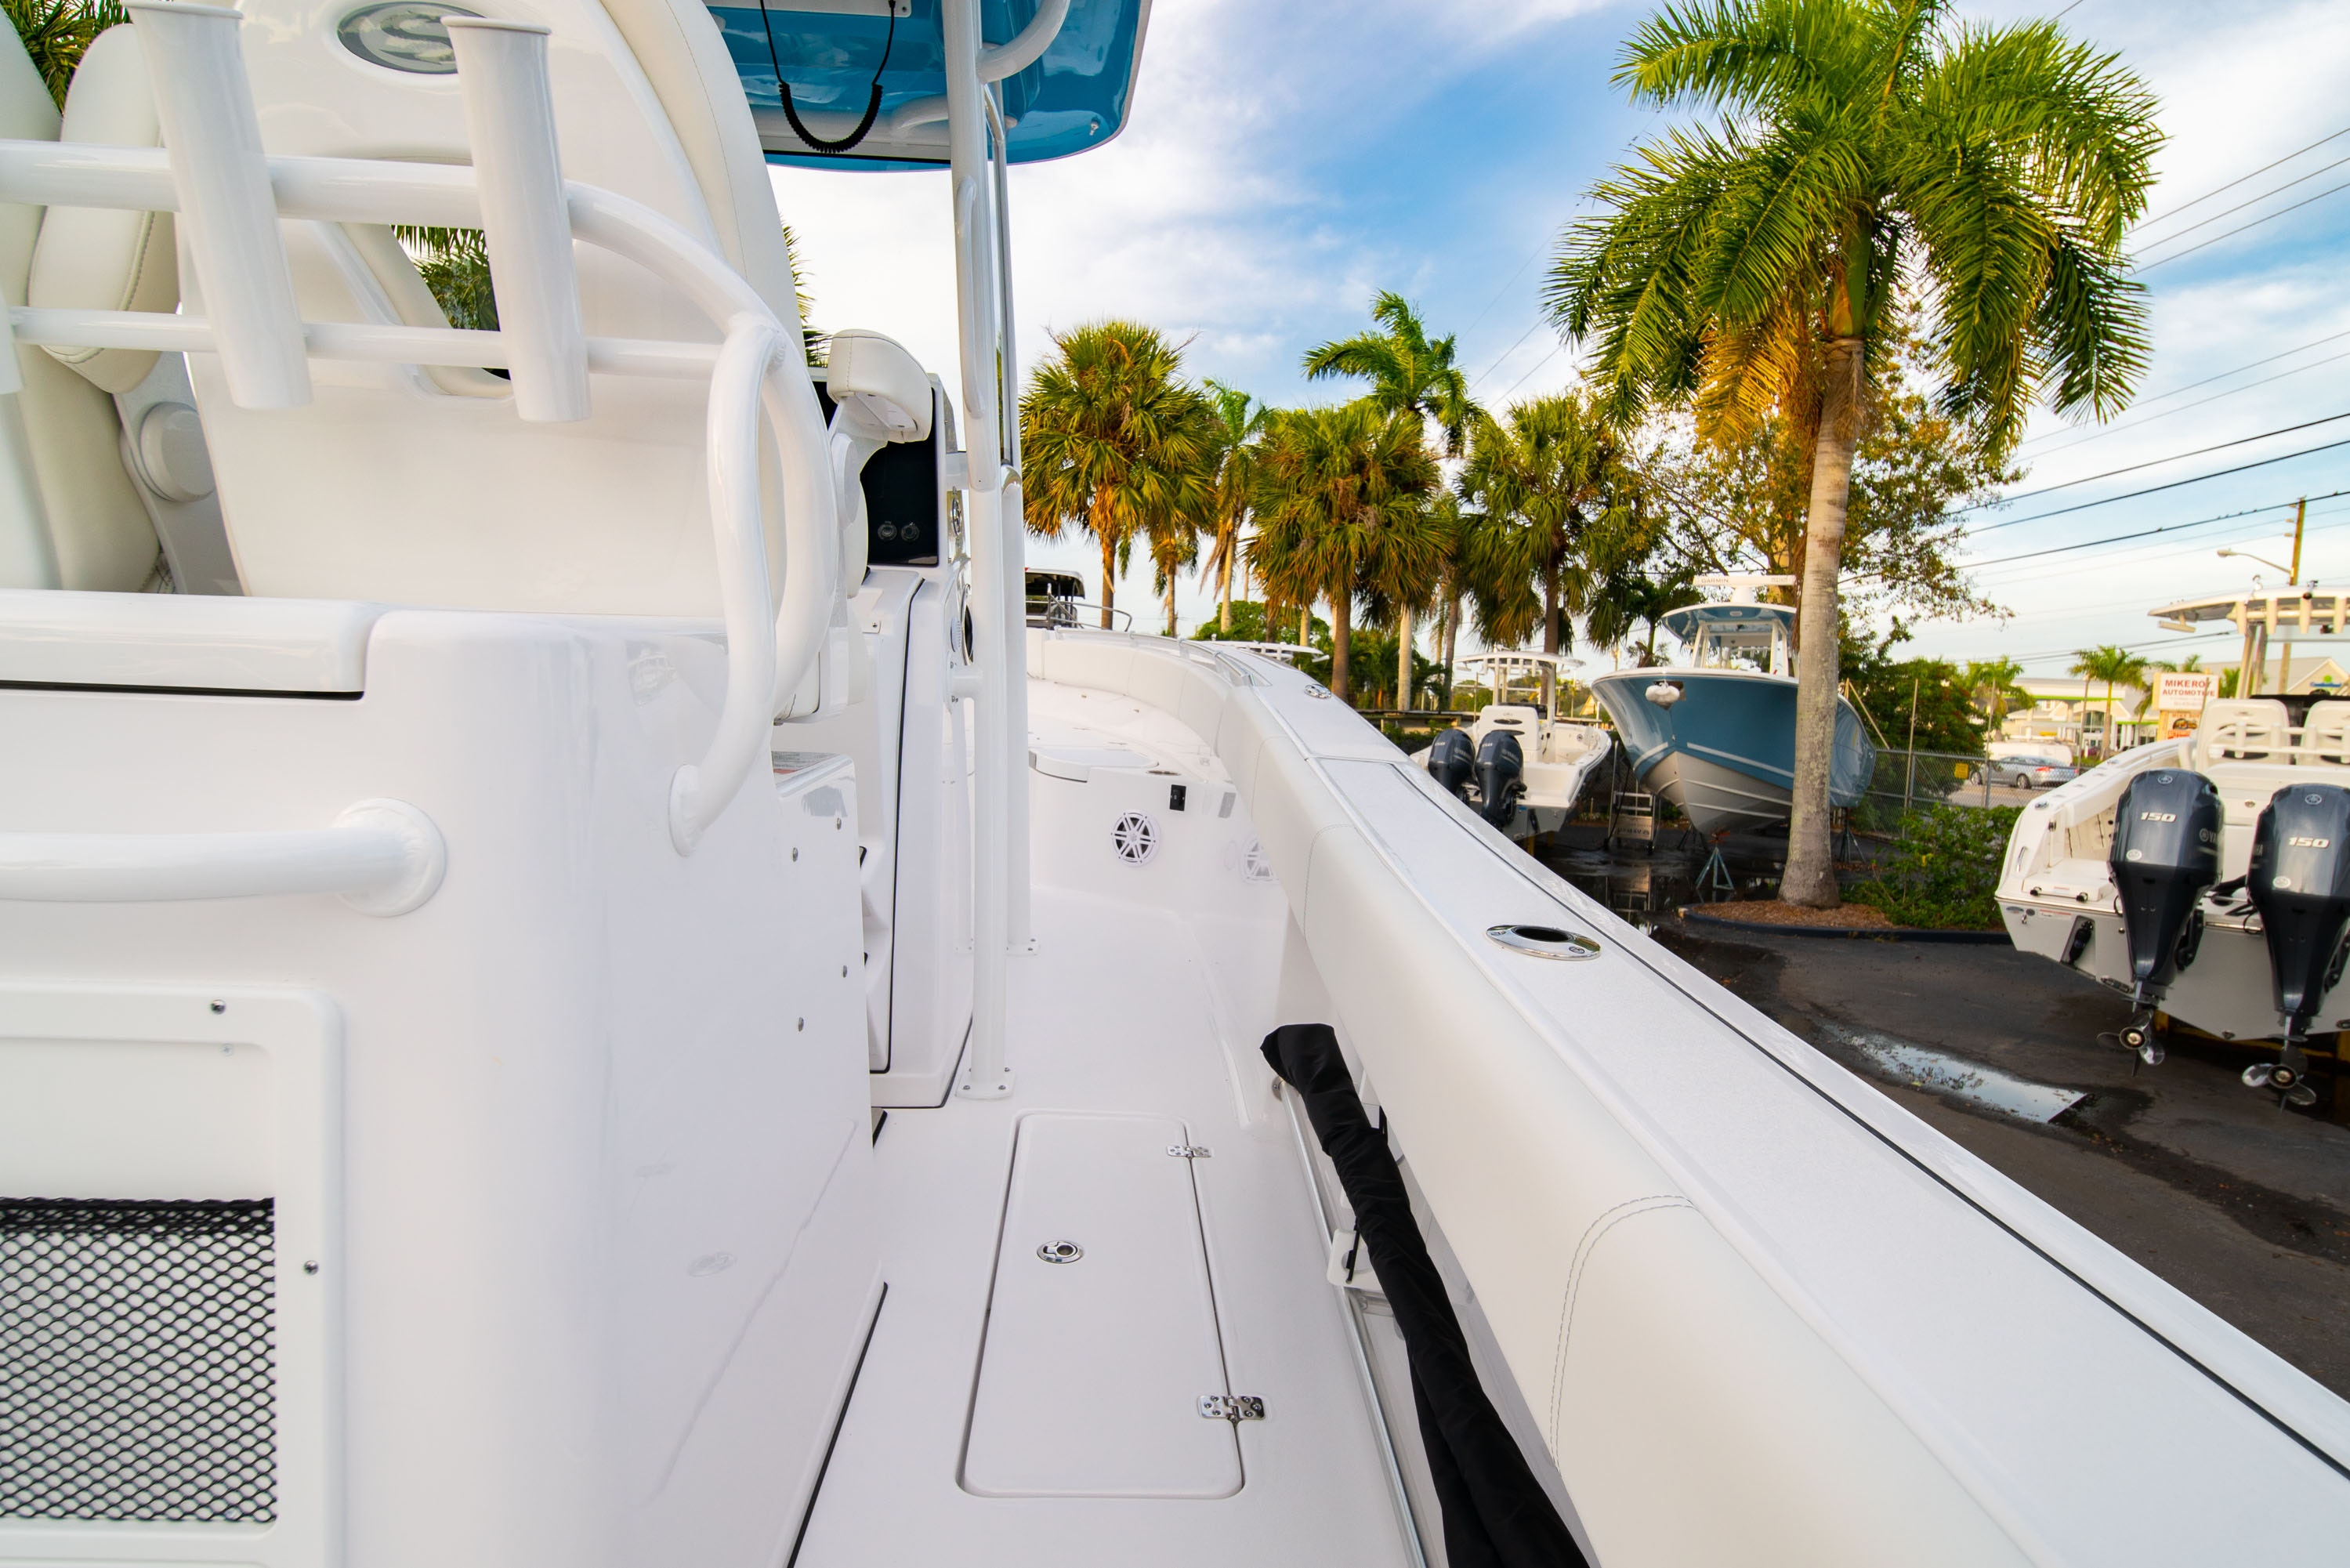 Thumbnail 17 for New 2020 Sportsman Open 282 Center Console boat for sale in West Palm Beach, FL